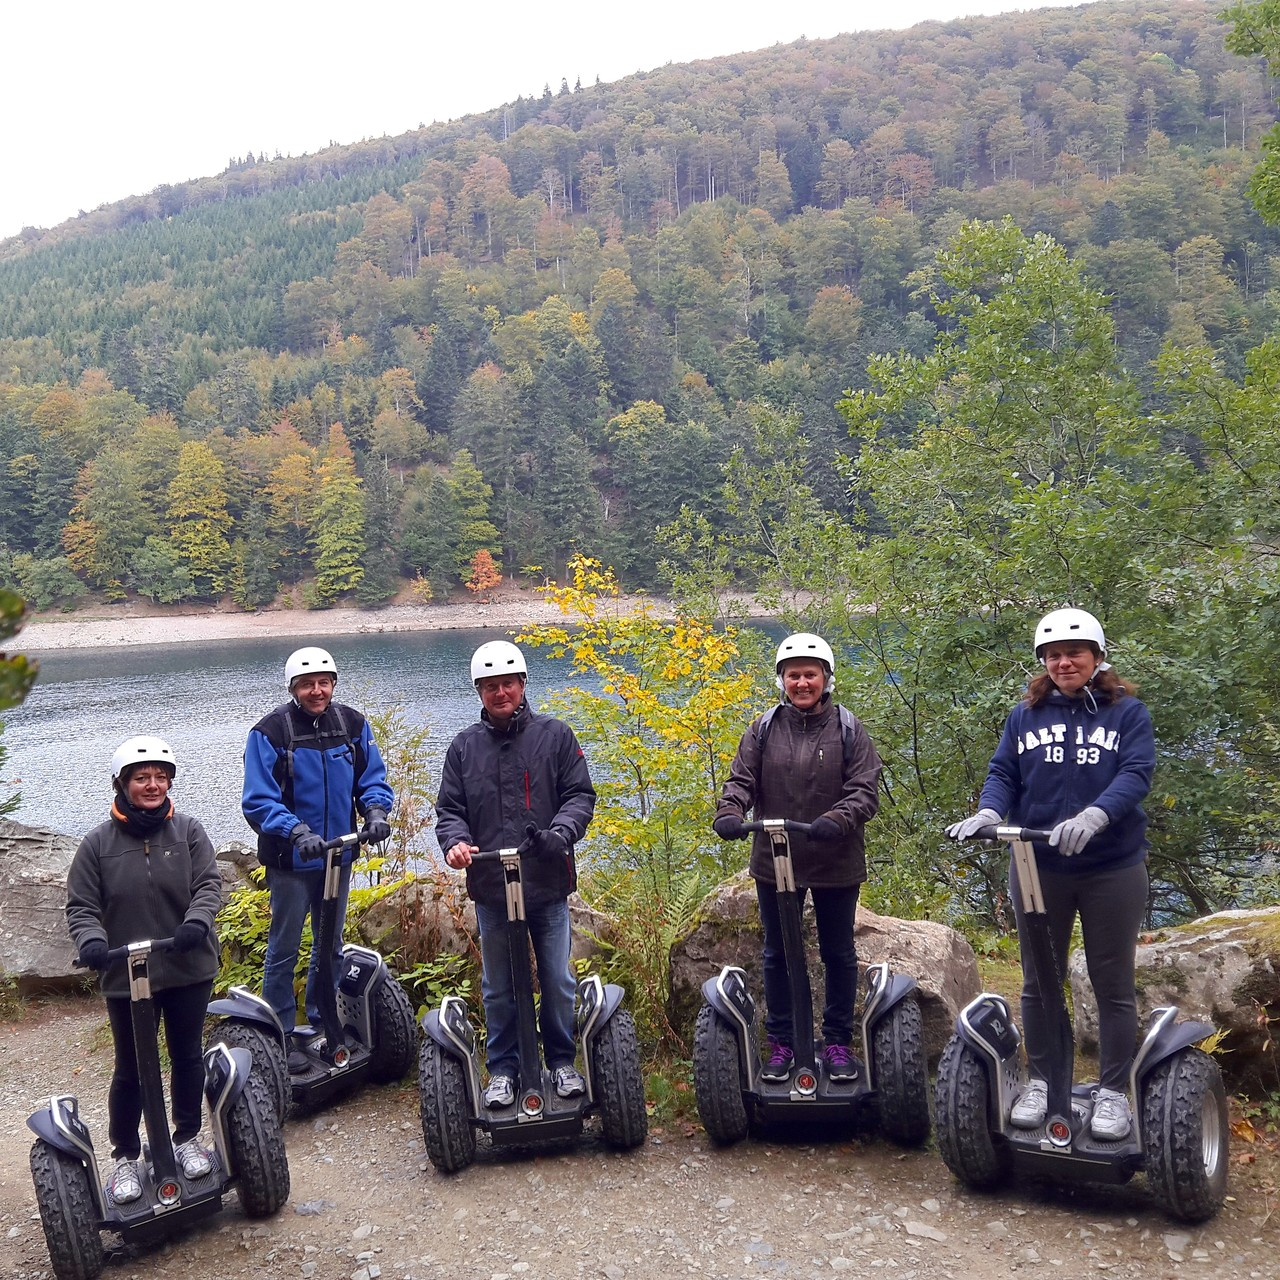 FUN MOVING GYROPODE SEGWAY EN ALSACE - Lac du Ballon, Vosges